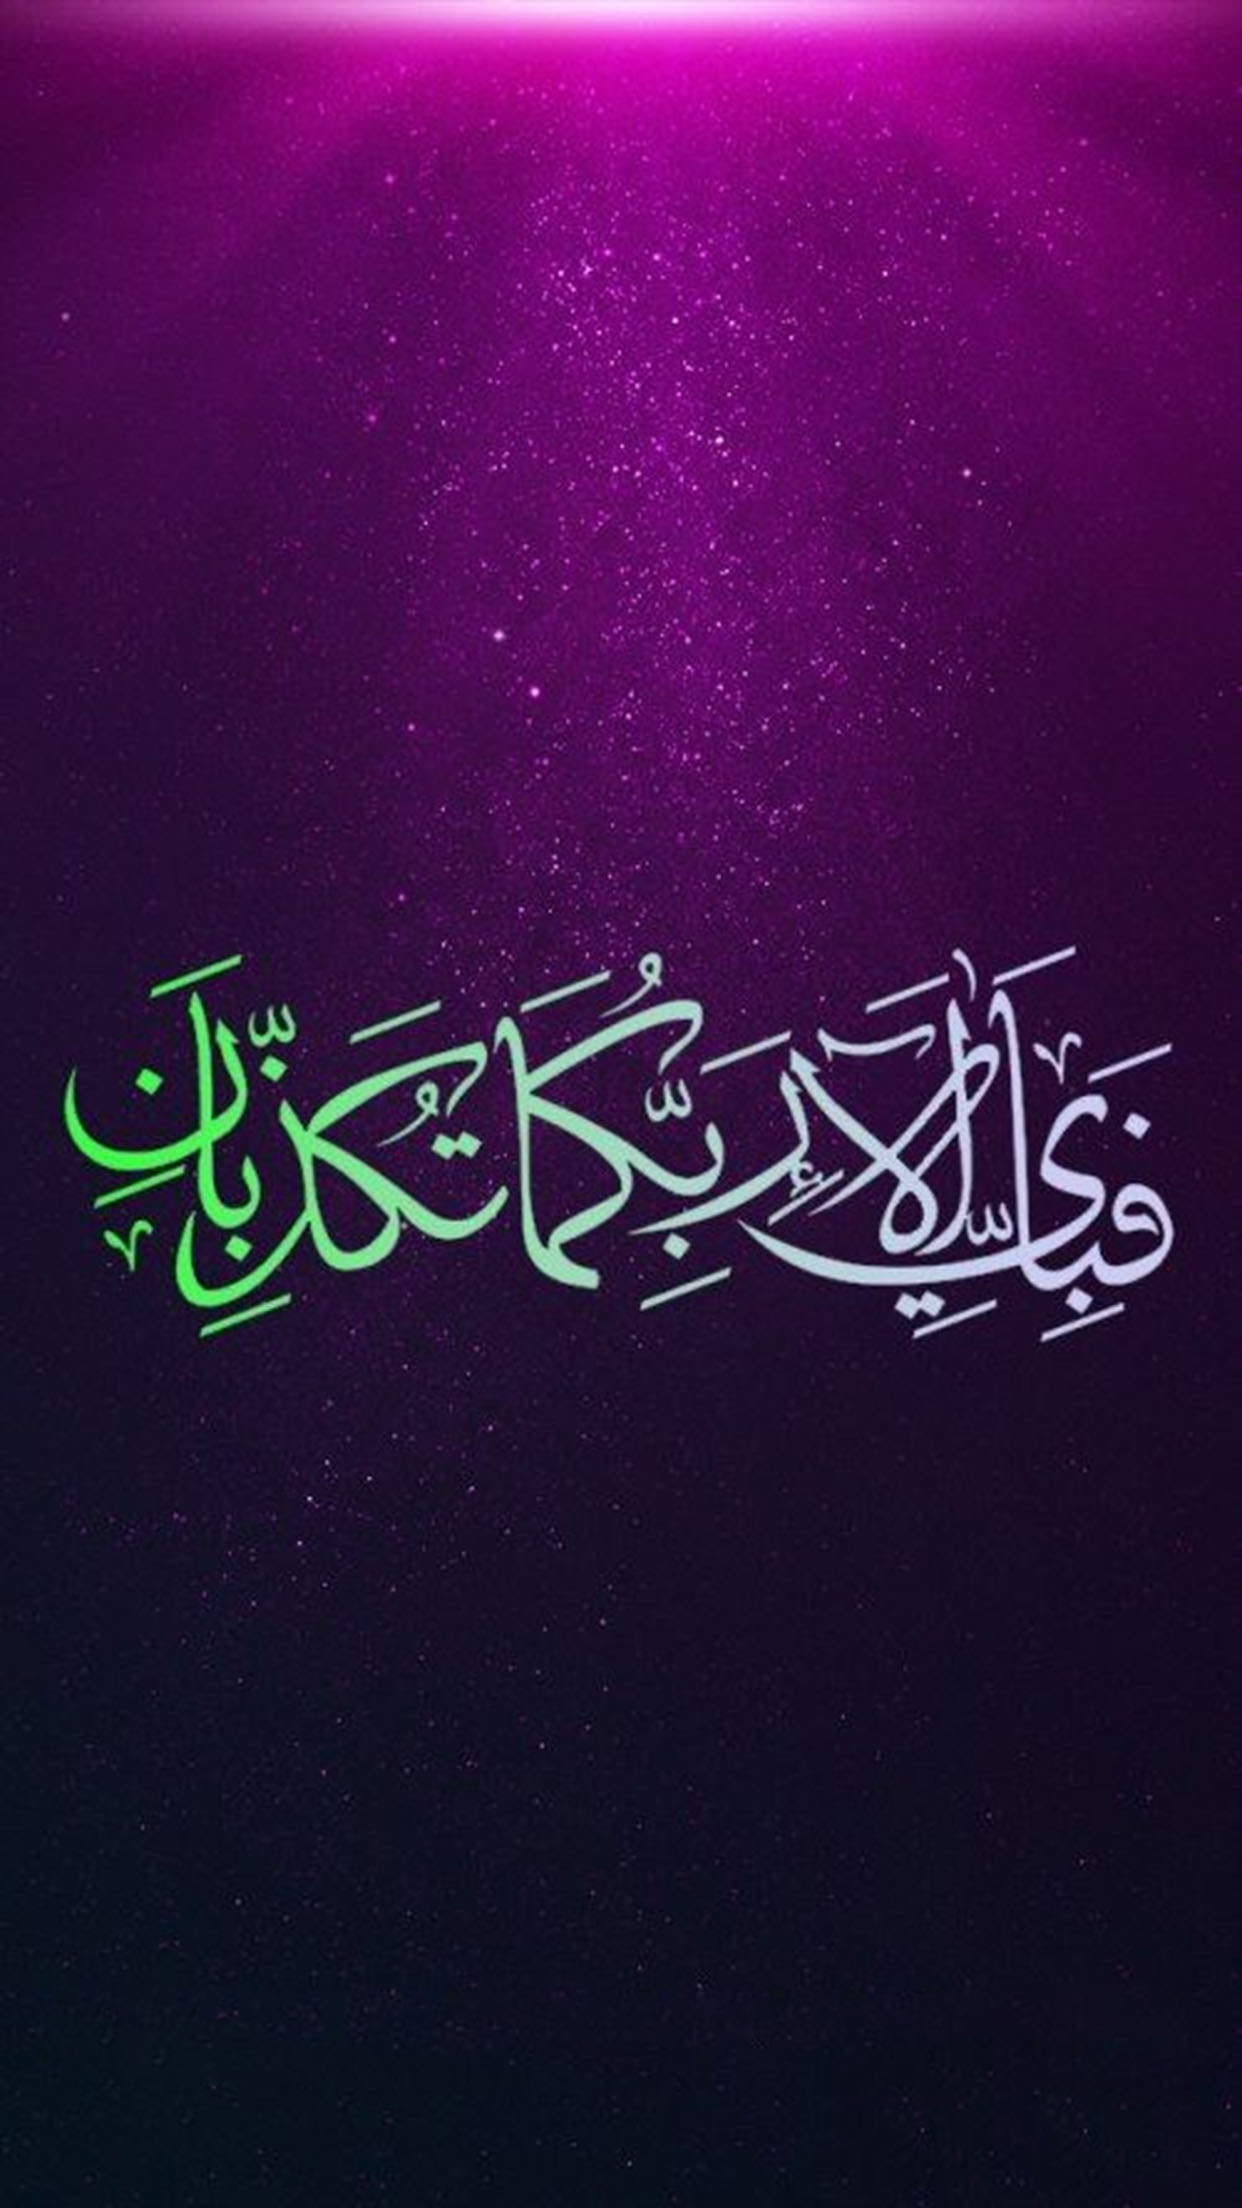 Arabic Calligraphy 3 Wallpaper For Iphone X 8 7 6